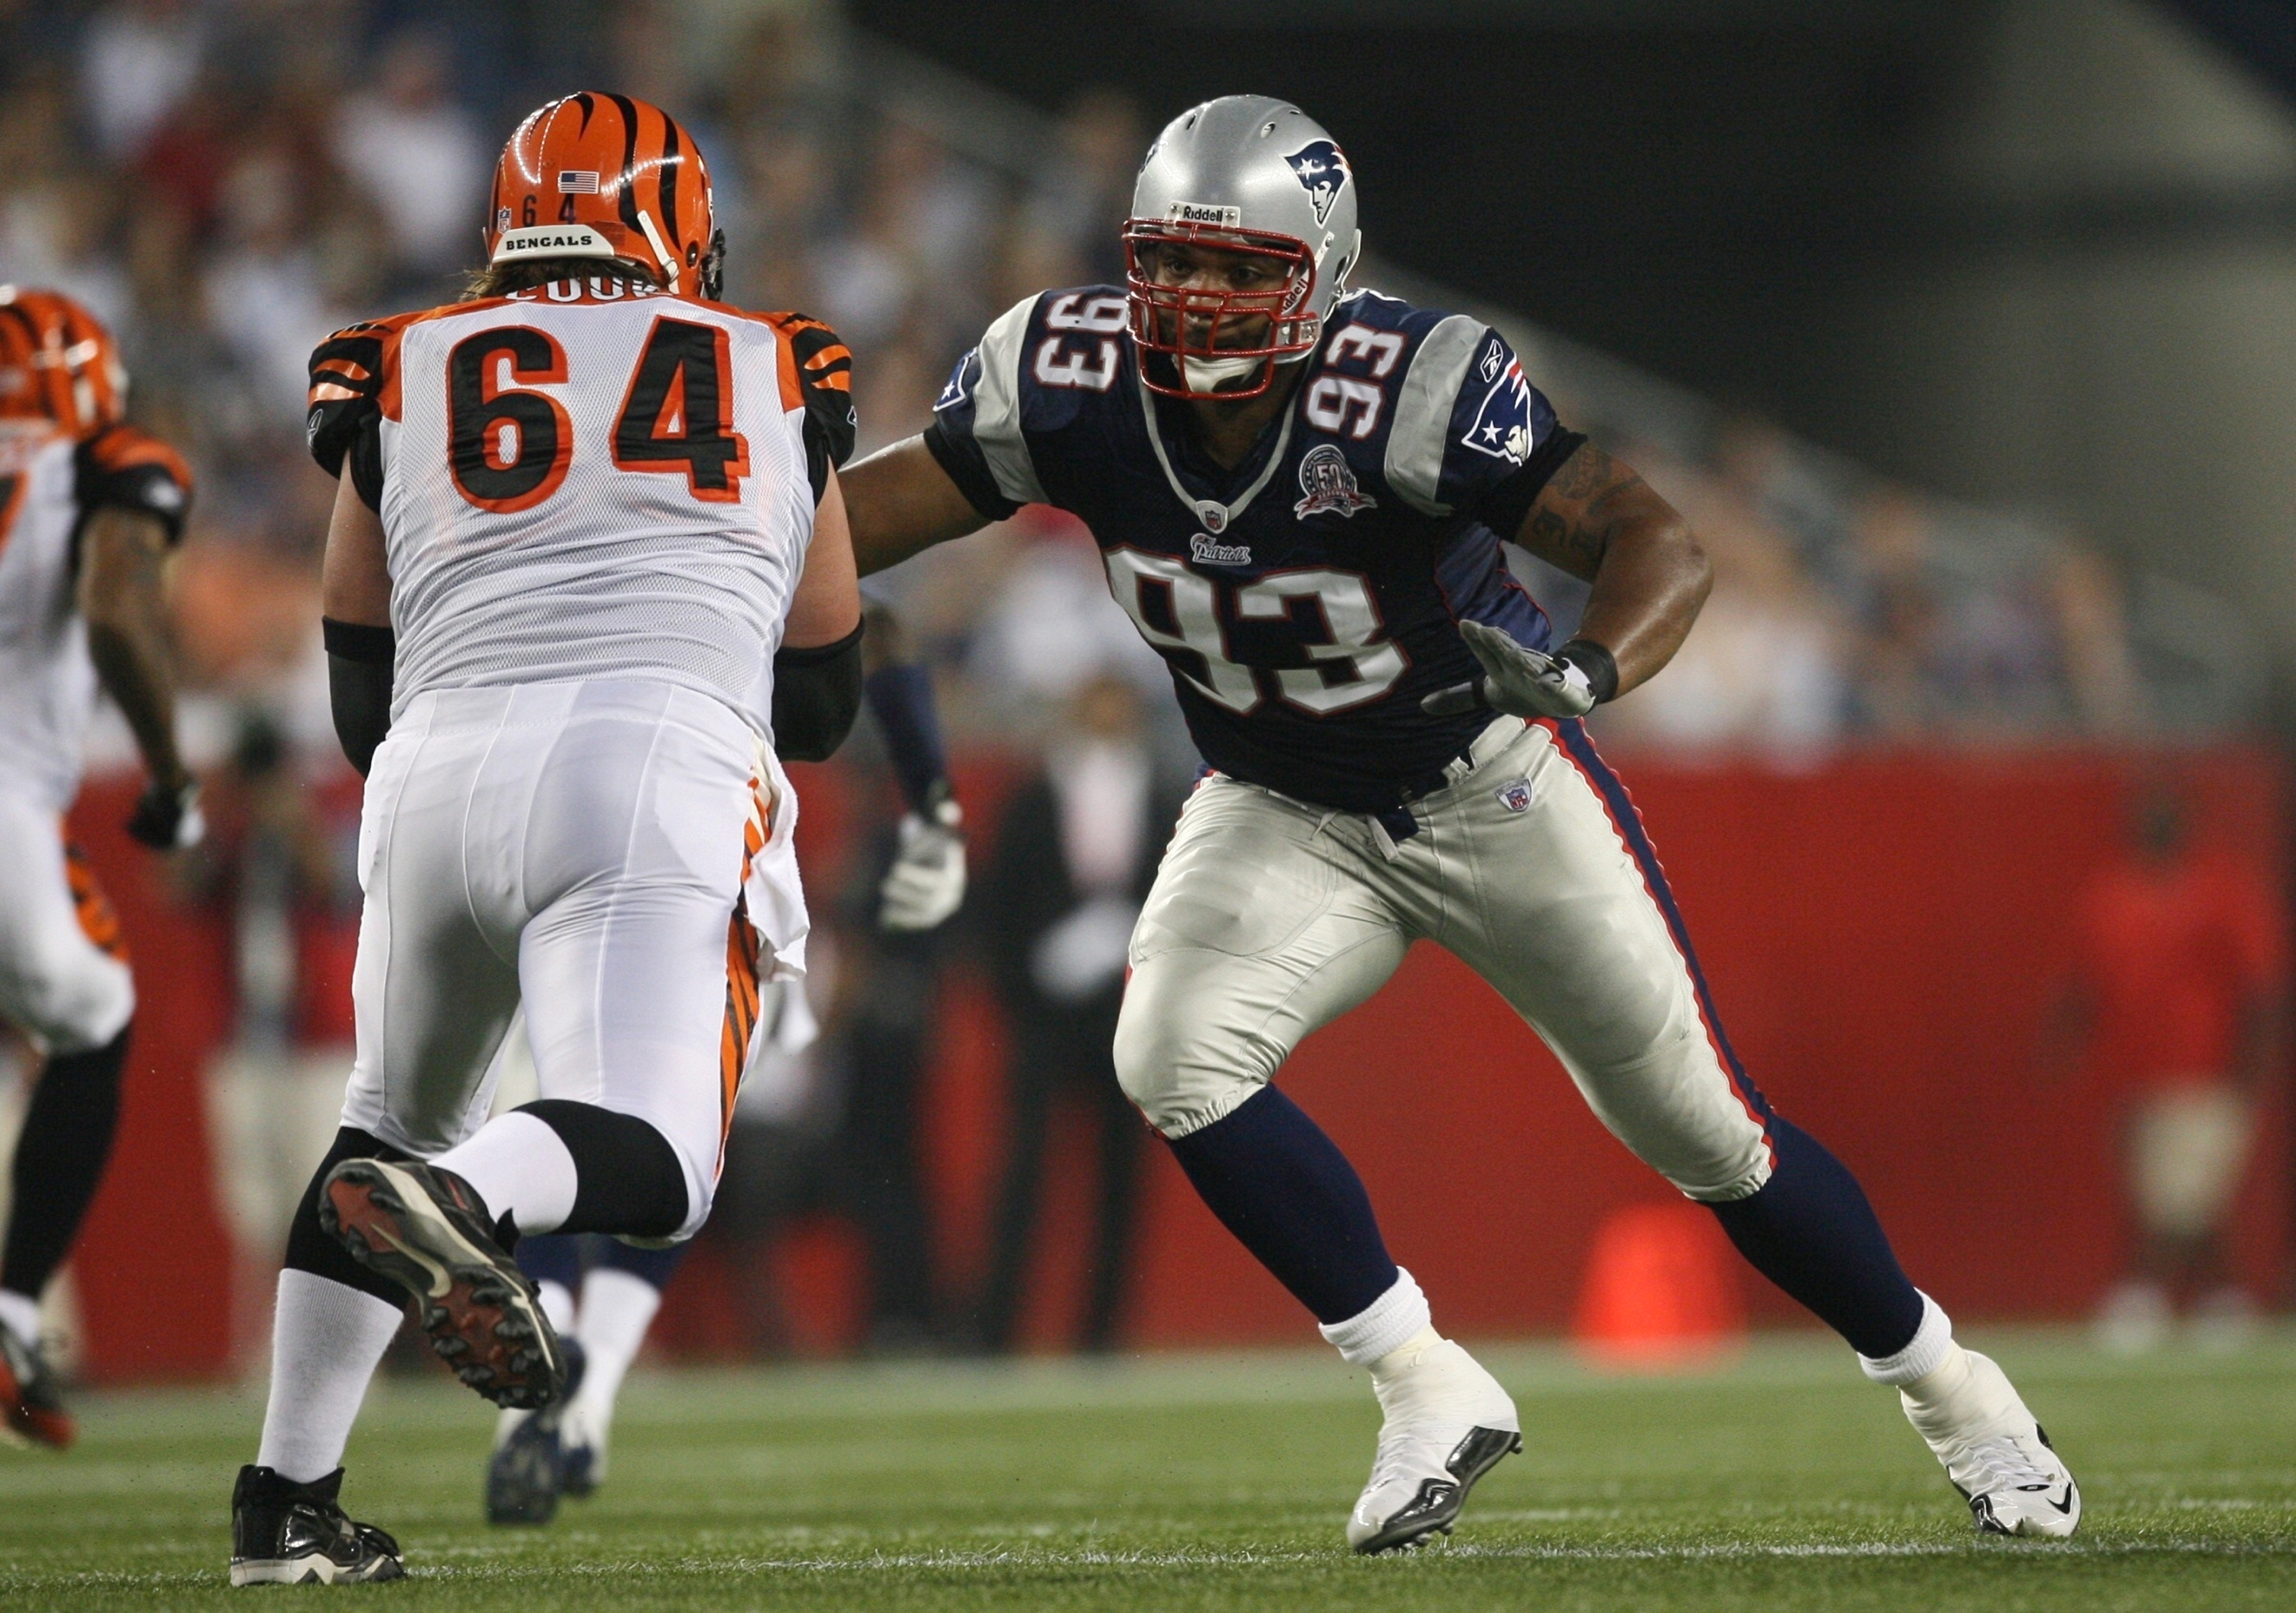 FOXBORO, MA - AUGUST 20:  Richard Seymour #93 of the New England Patriots rushes the quarterback against Kyle Cook #64 of the Cincinnati Bengals during their preseason game at Gillette Stadium on August 20, 2009 in Foxboro, Massachusetts.  (Photo by Jim R